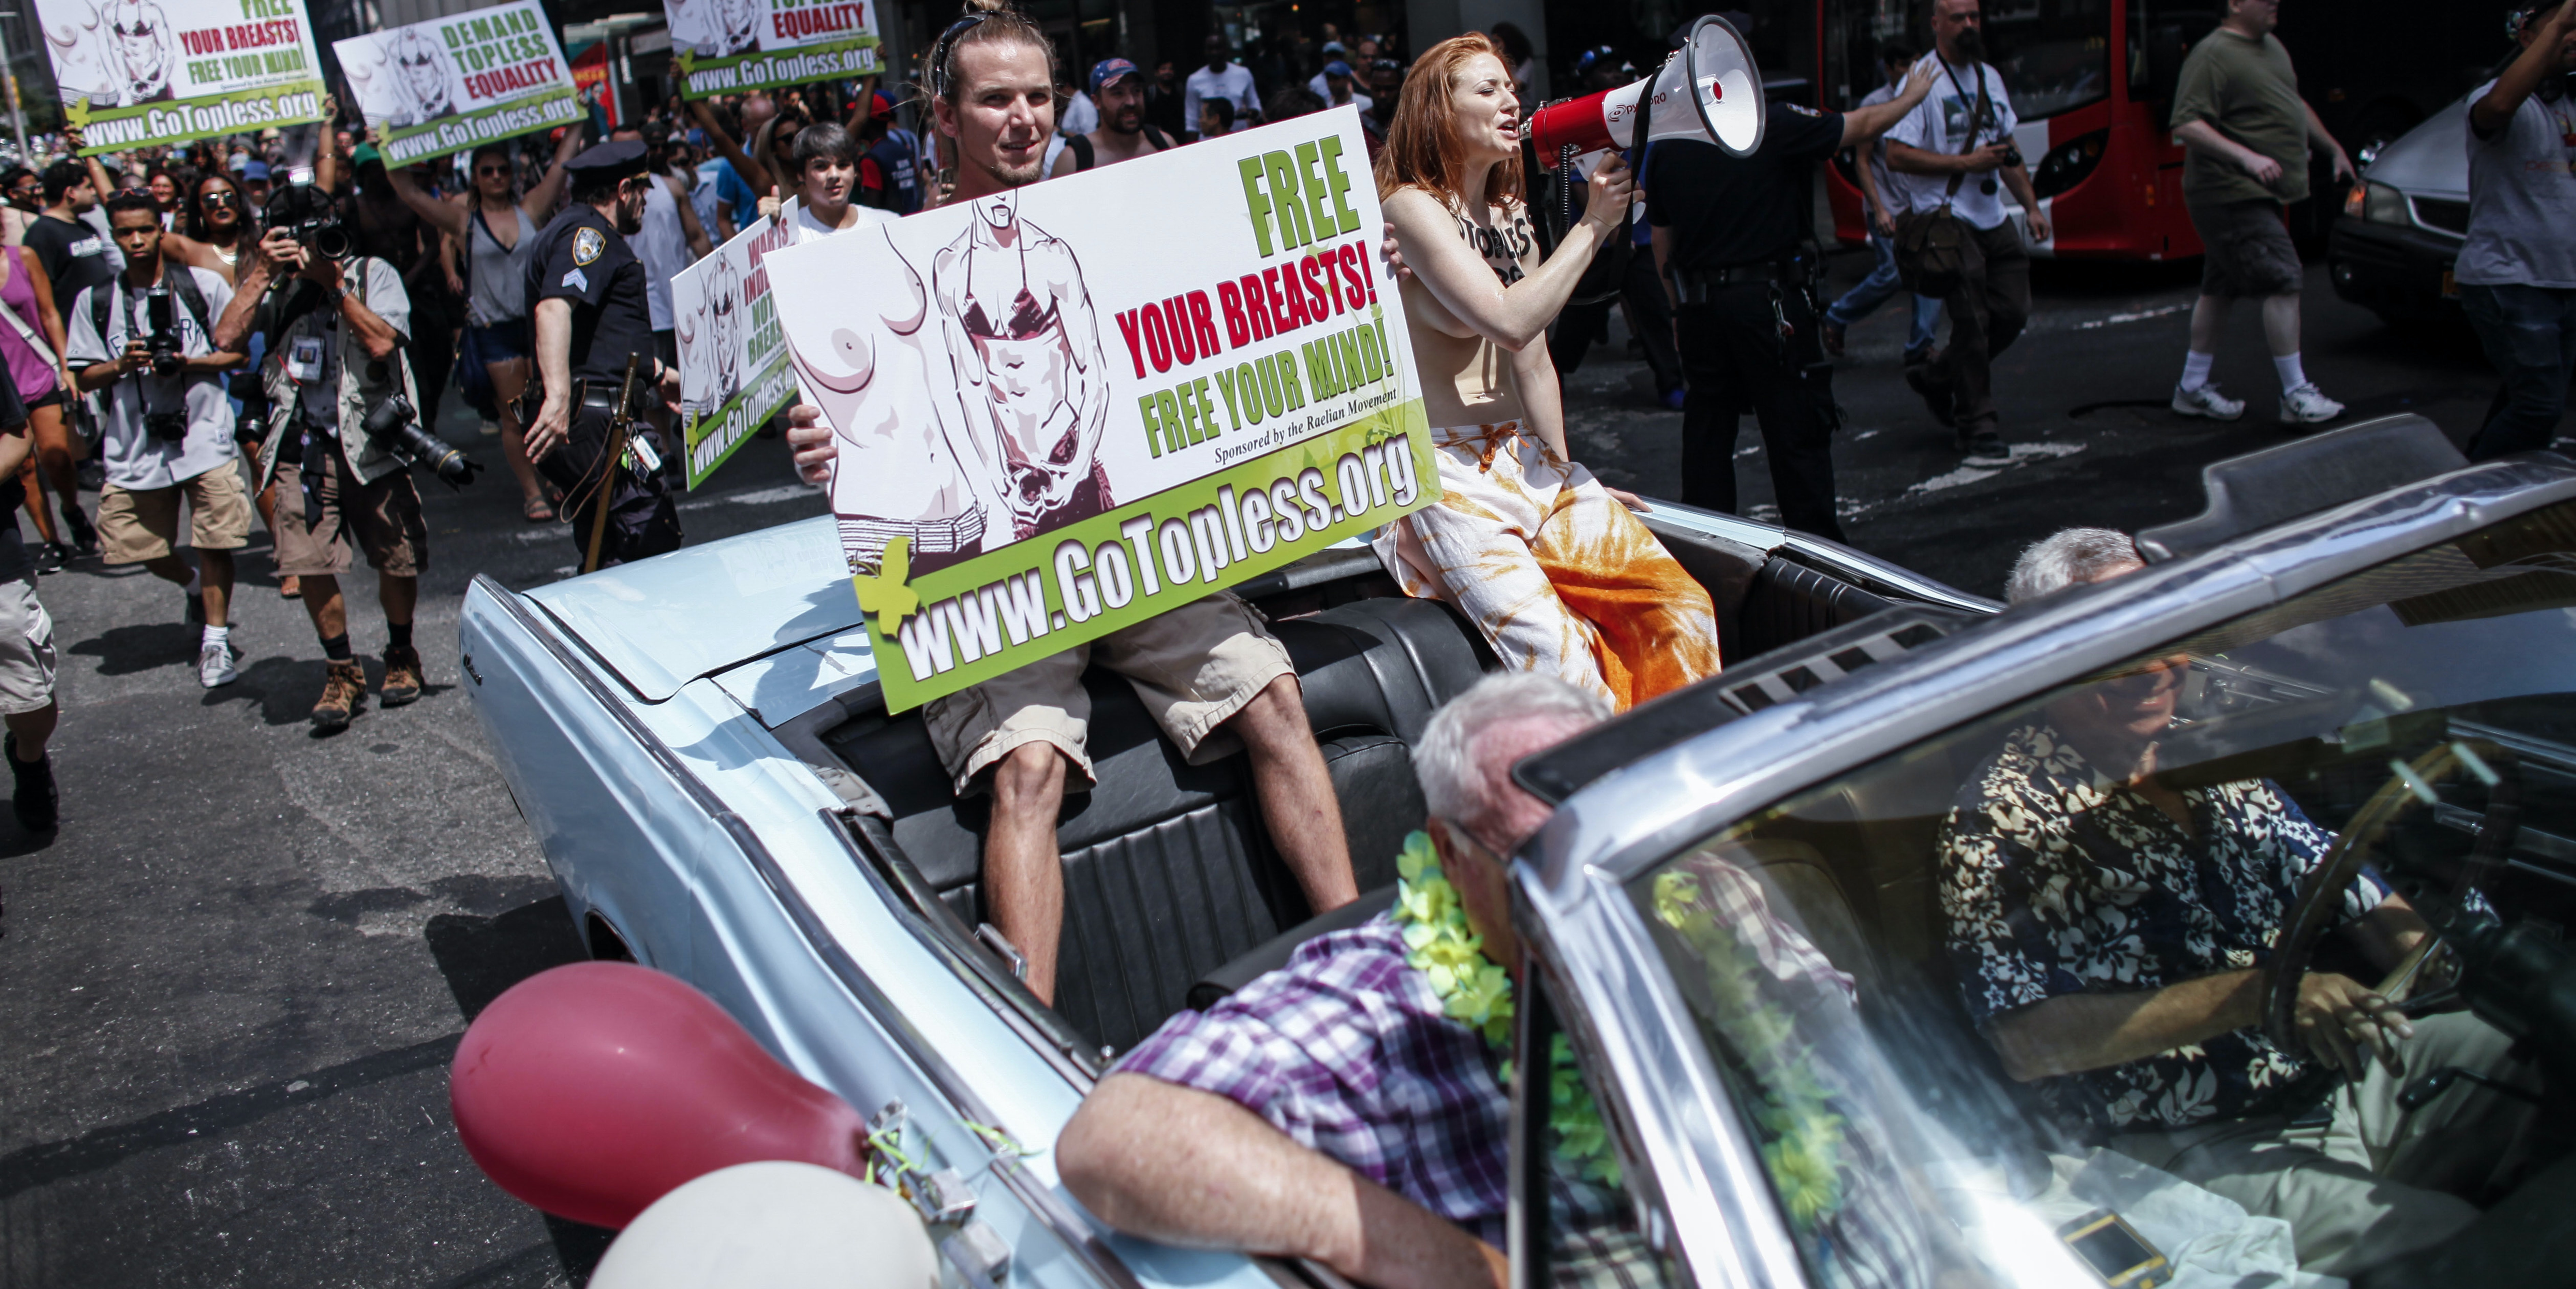 People participate in the GoTopless pride parade in Manhattan on August 23, 2015.